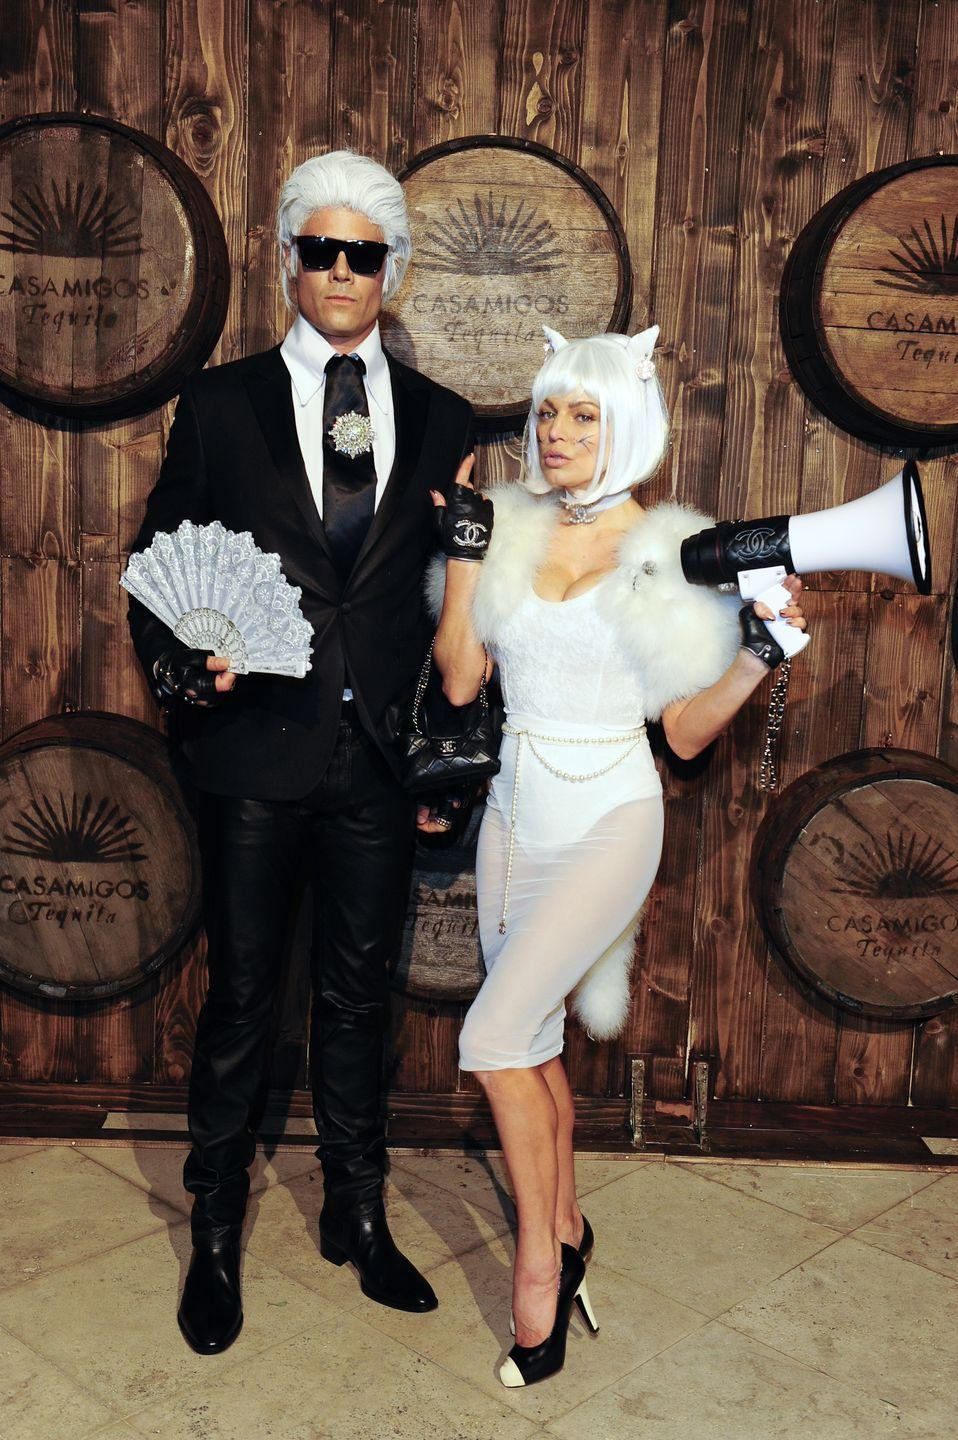 <p>Name a better duo than Karl Lagerfeld and Choupette. We'll wait. Fergie and Josh Duhamel put their fellow partygoers to shame in 2015. </p>